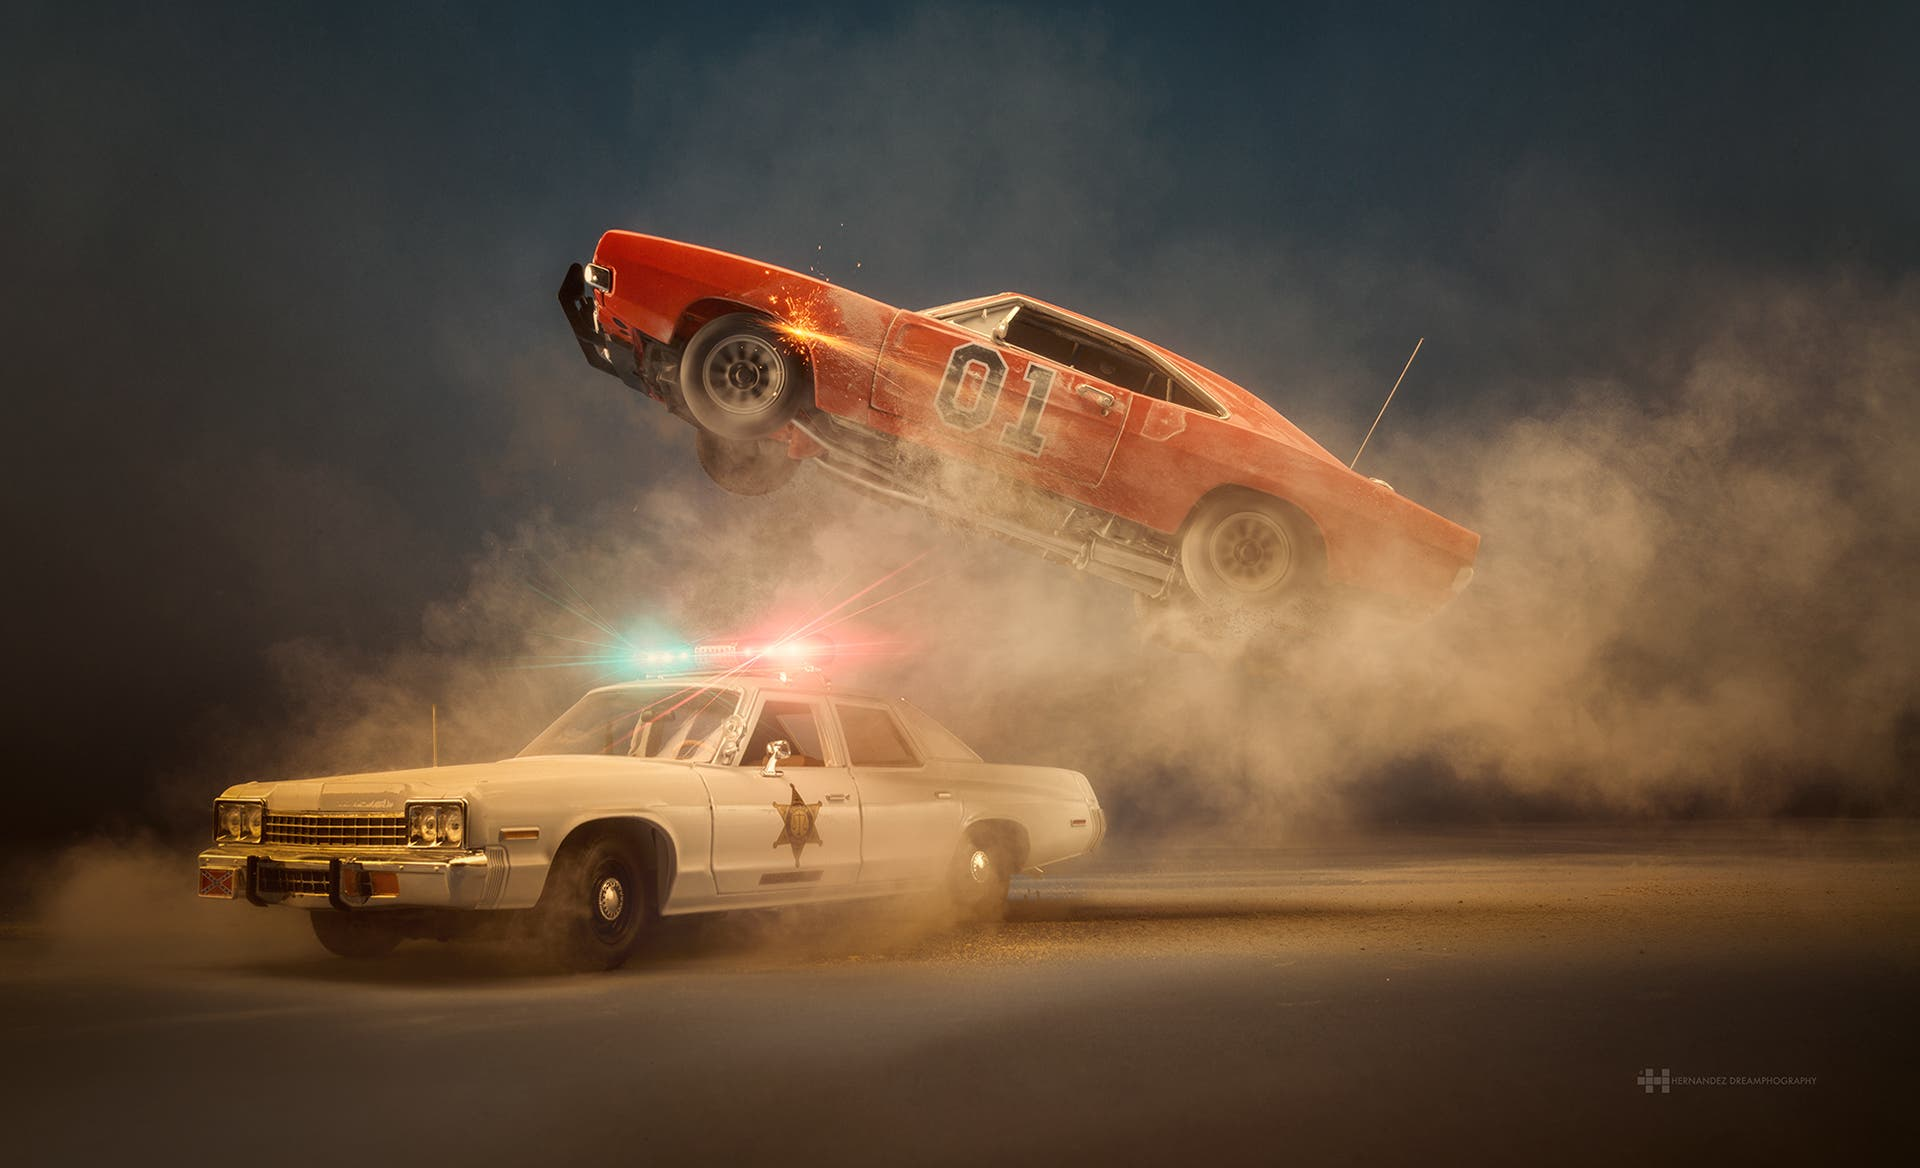 Felix Hernandez Brings The Dukes Of Hazzard To Life